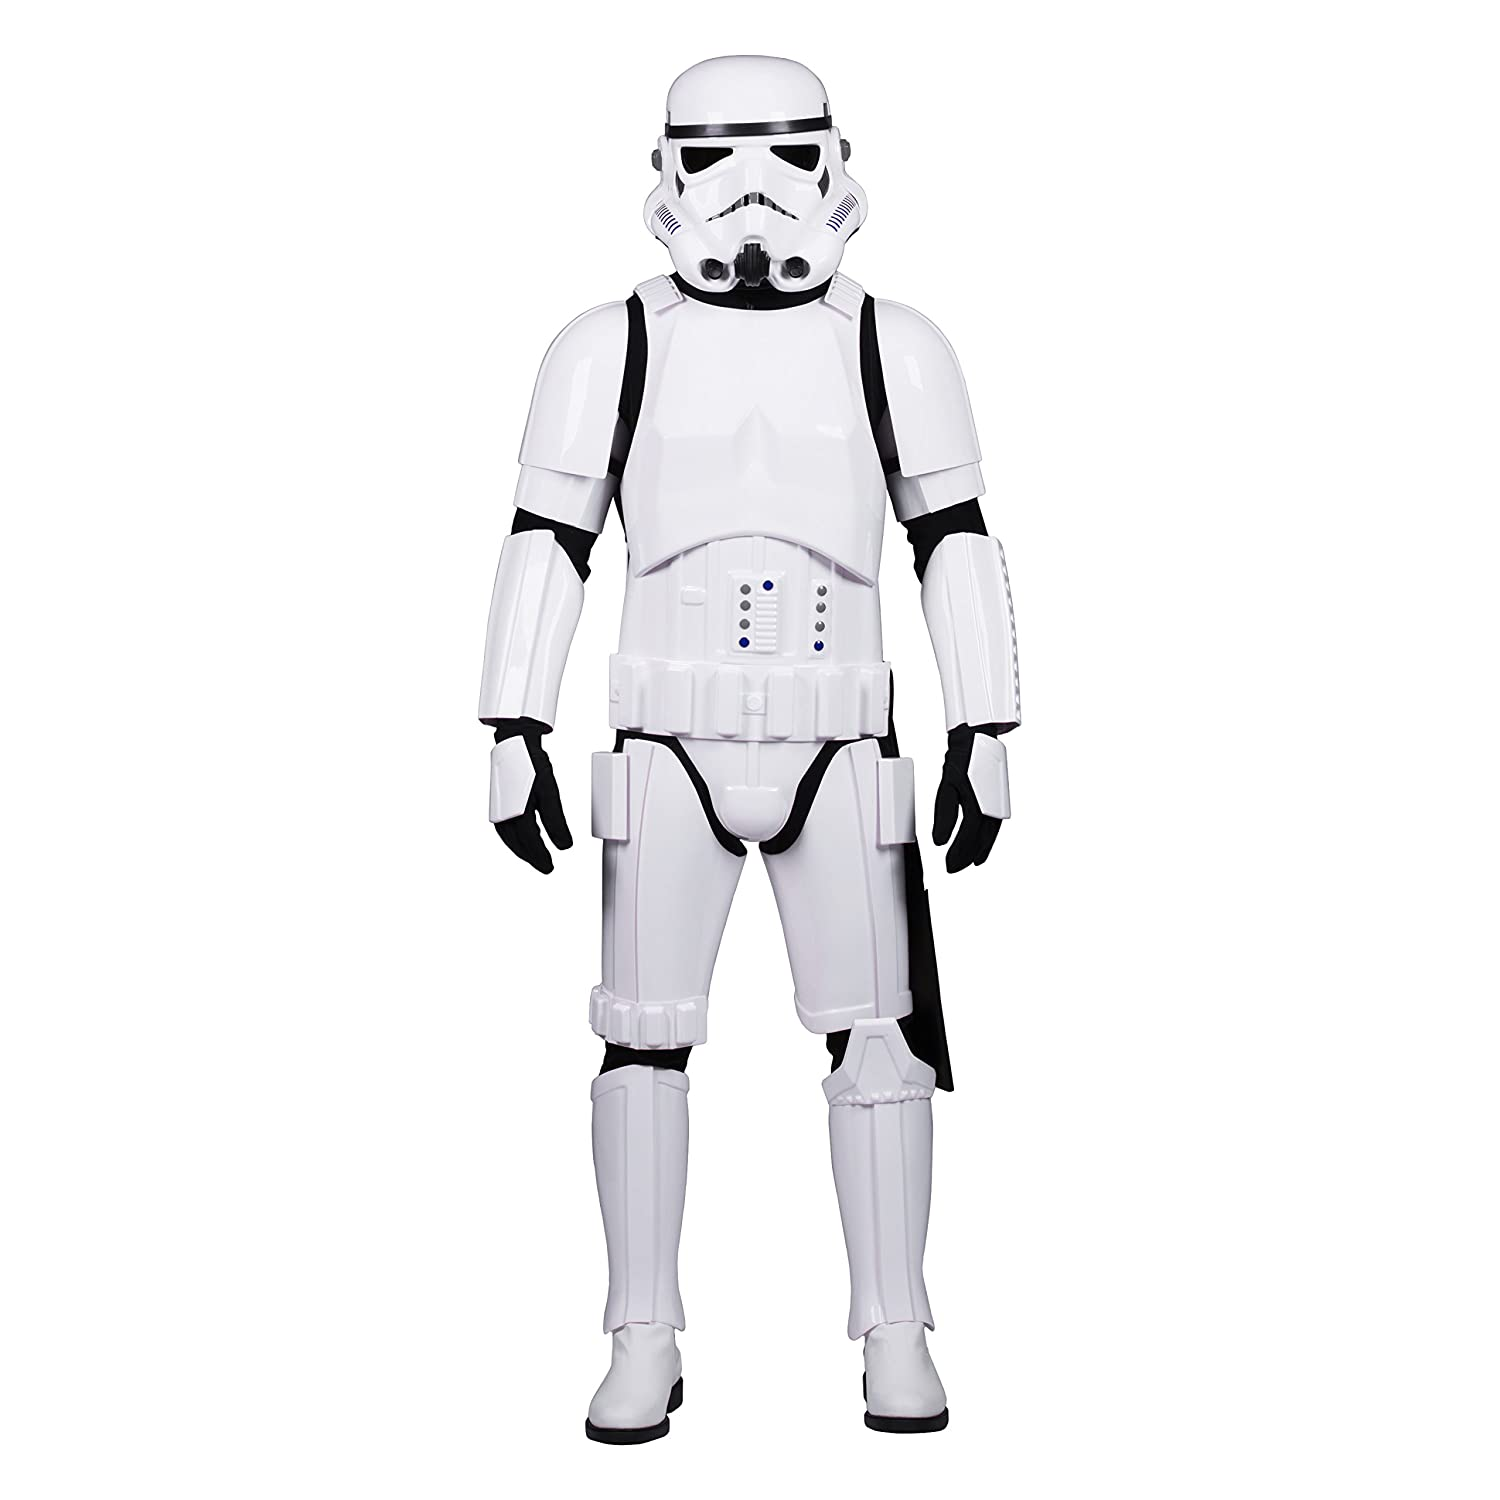 Star Wars Stormtrooper Costume Armour Package with